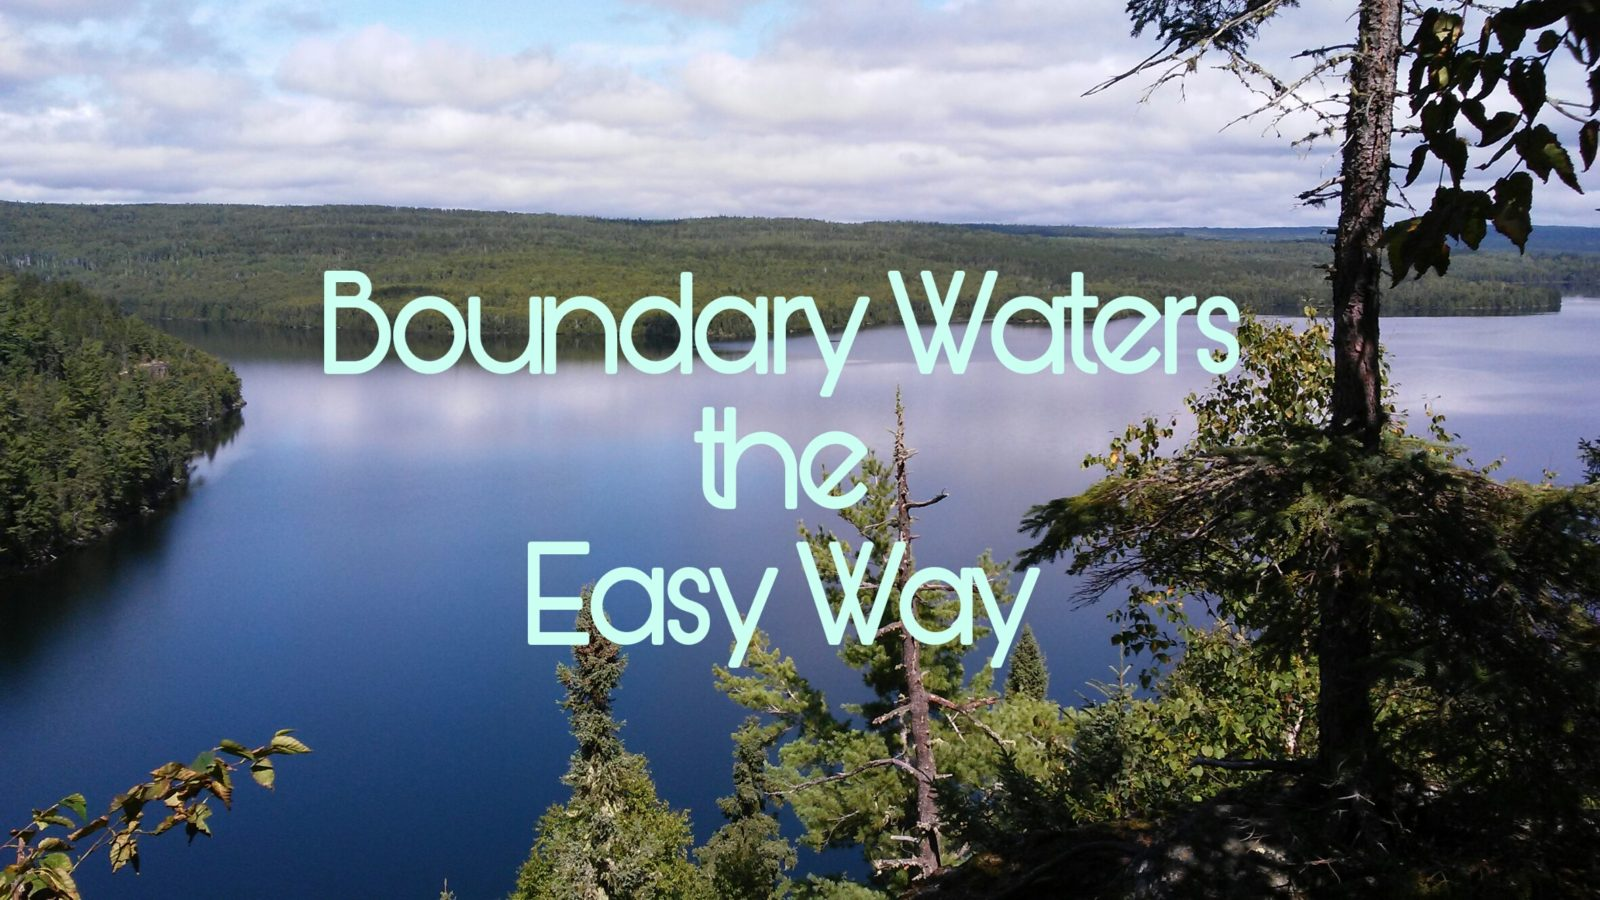 Boundary Waters the Easy Way